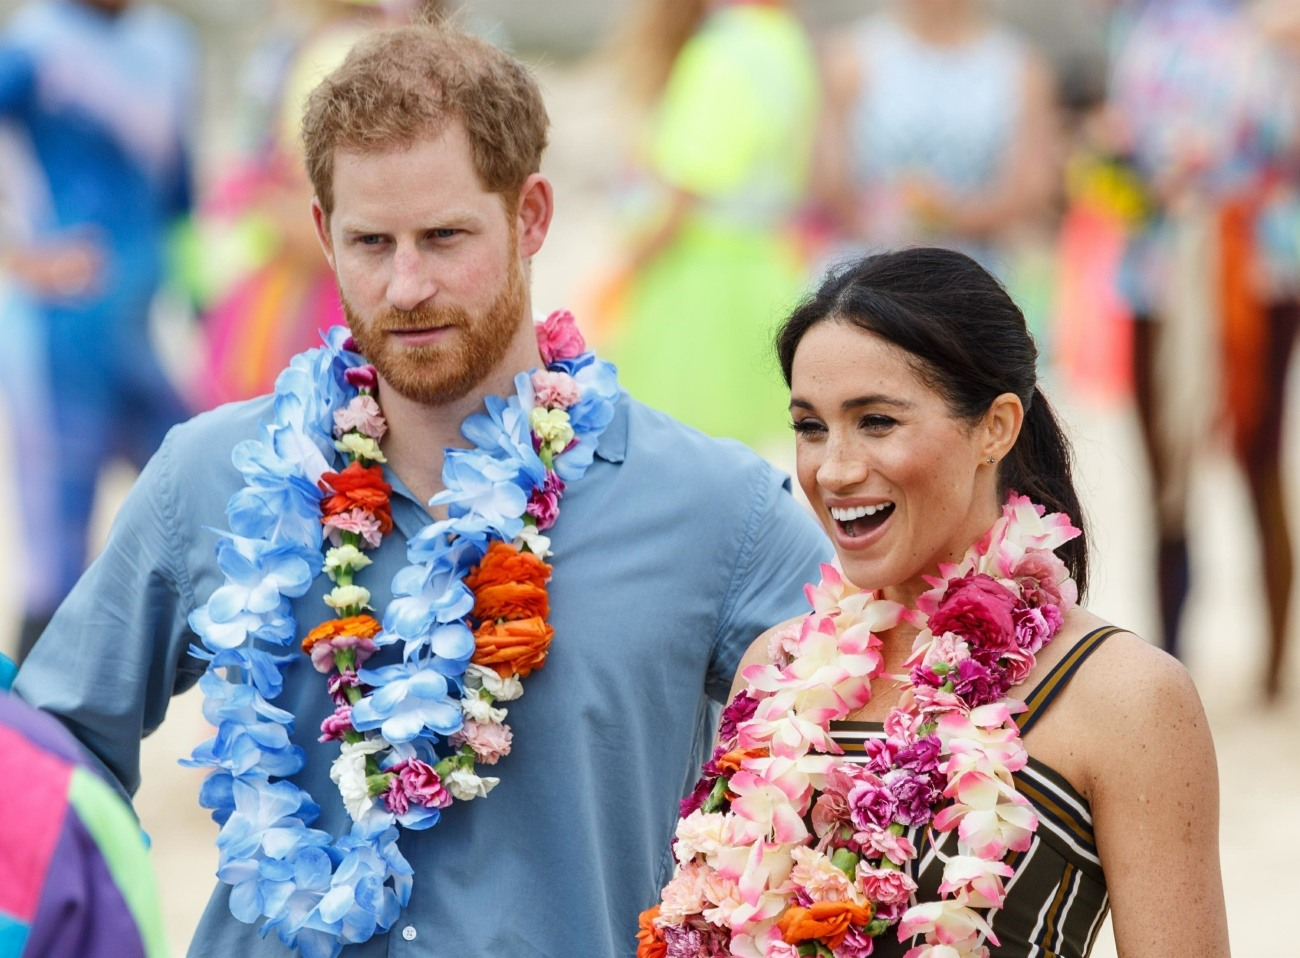 Prince Harry & Meghan accused of Ivory Tower elitism, as compared to Will & Kate